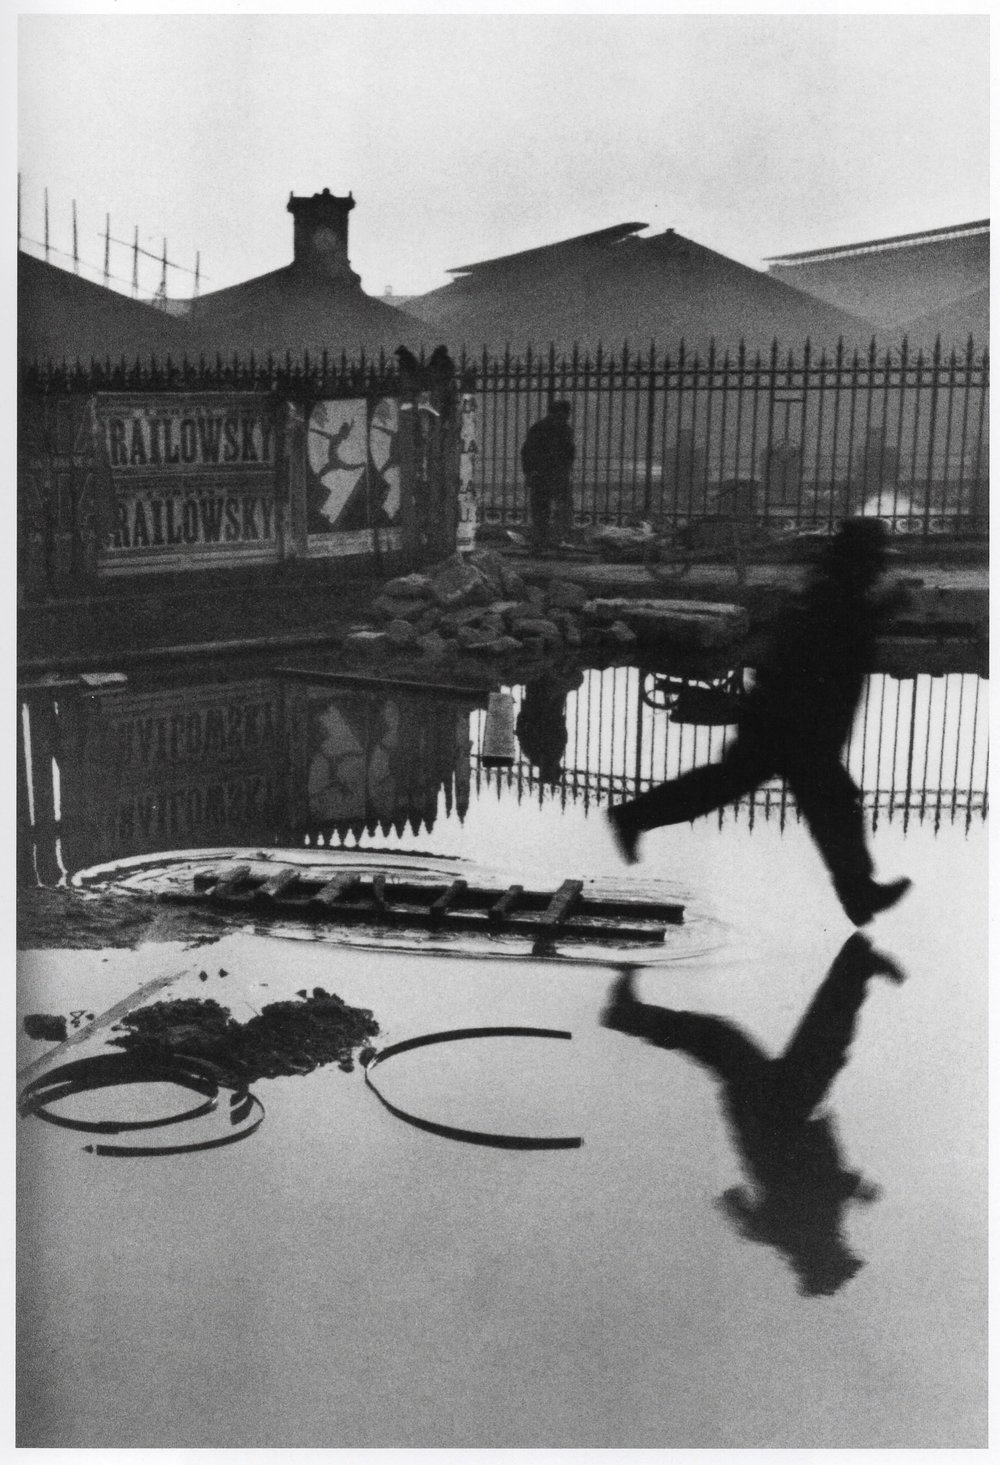 "Fair use: THIS is a decisive moment, one of the most famous by the photographer who coined the phrase, Henri Cartier-Bresson. Copyright 2010 Henri Cartier-Bresson/Magnum Photos.  Scanned from ""Henri Cartier-Bresson The Modern Century,"" Copyright 2010 The Museum of Modern Art. The RX100 Mark V is a radically superior image capture machine compared to the Leica with which Cartier-Bresson took this photograph, but in the end this grainy, slightly blurred image taken almost 85 years ago proves that it's not the machine, it's the person. And that technical perfection is NOT always the goal."